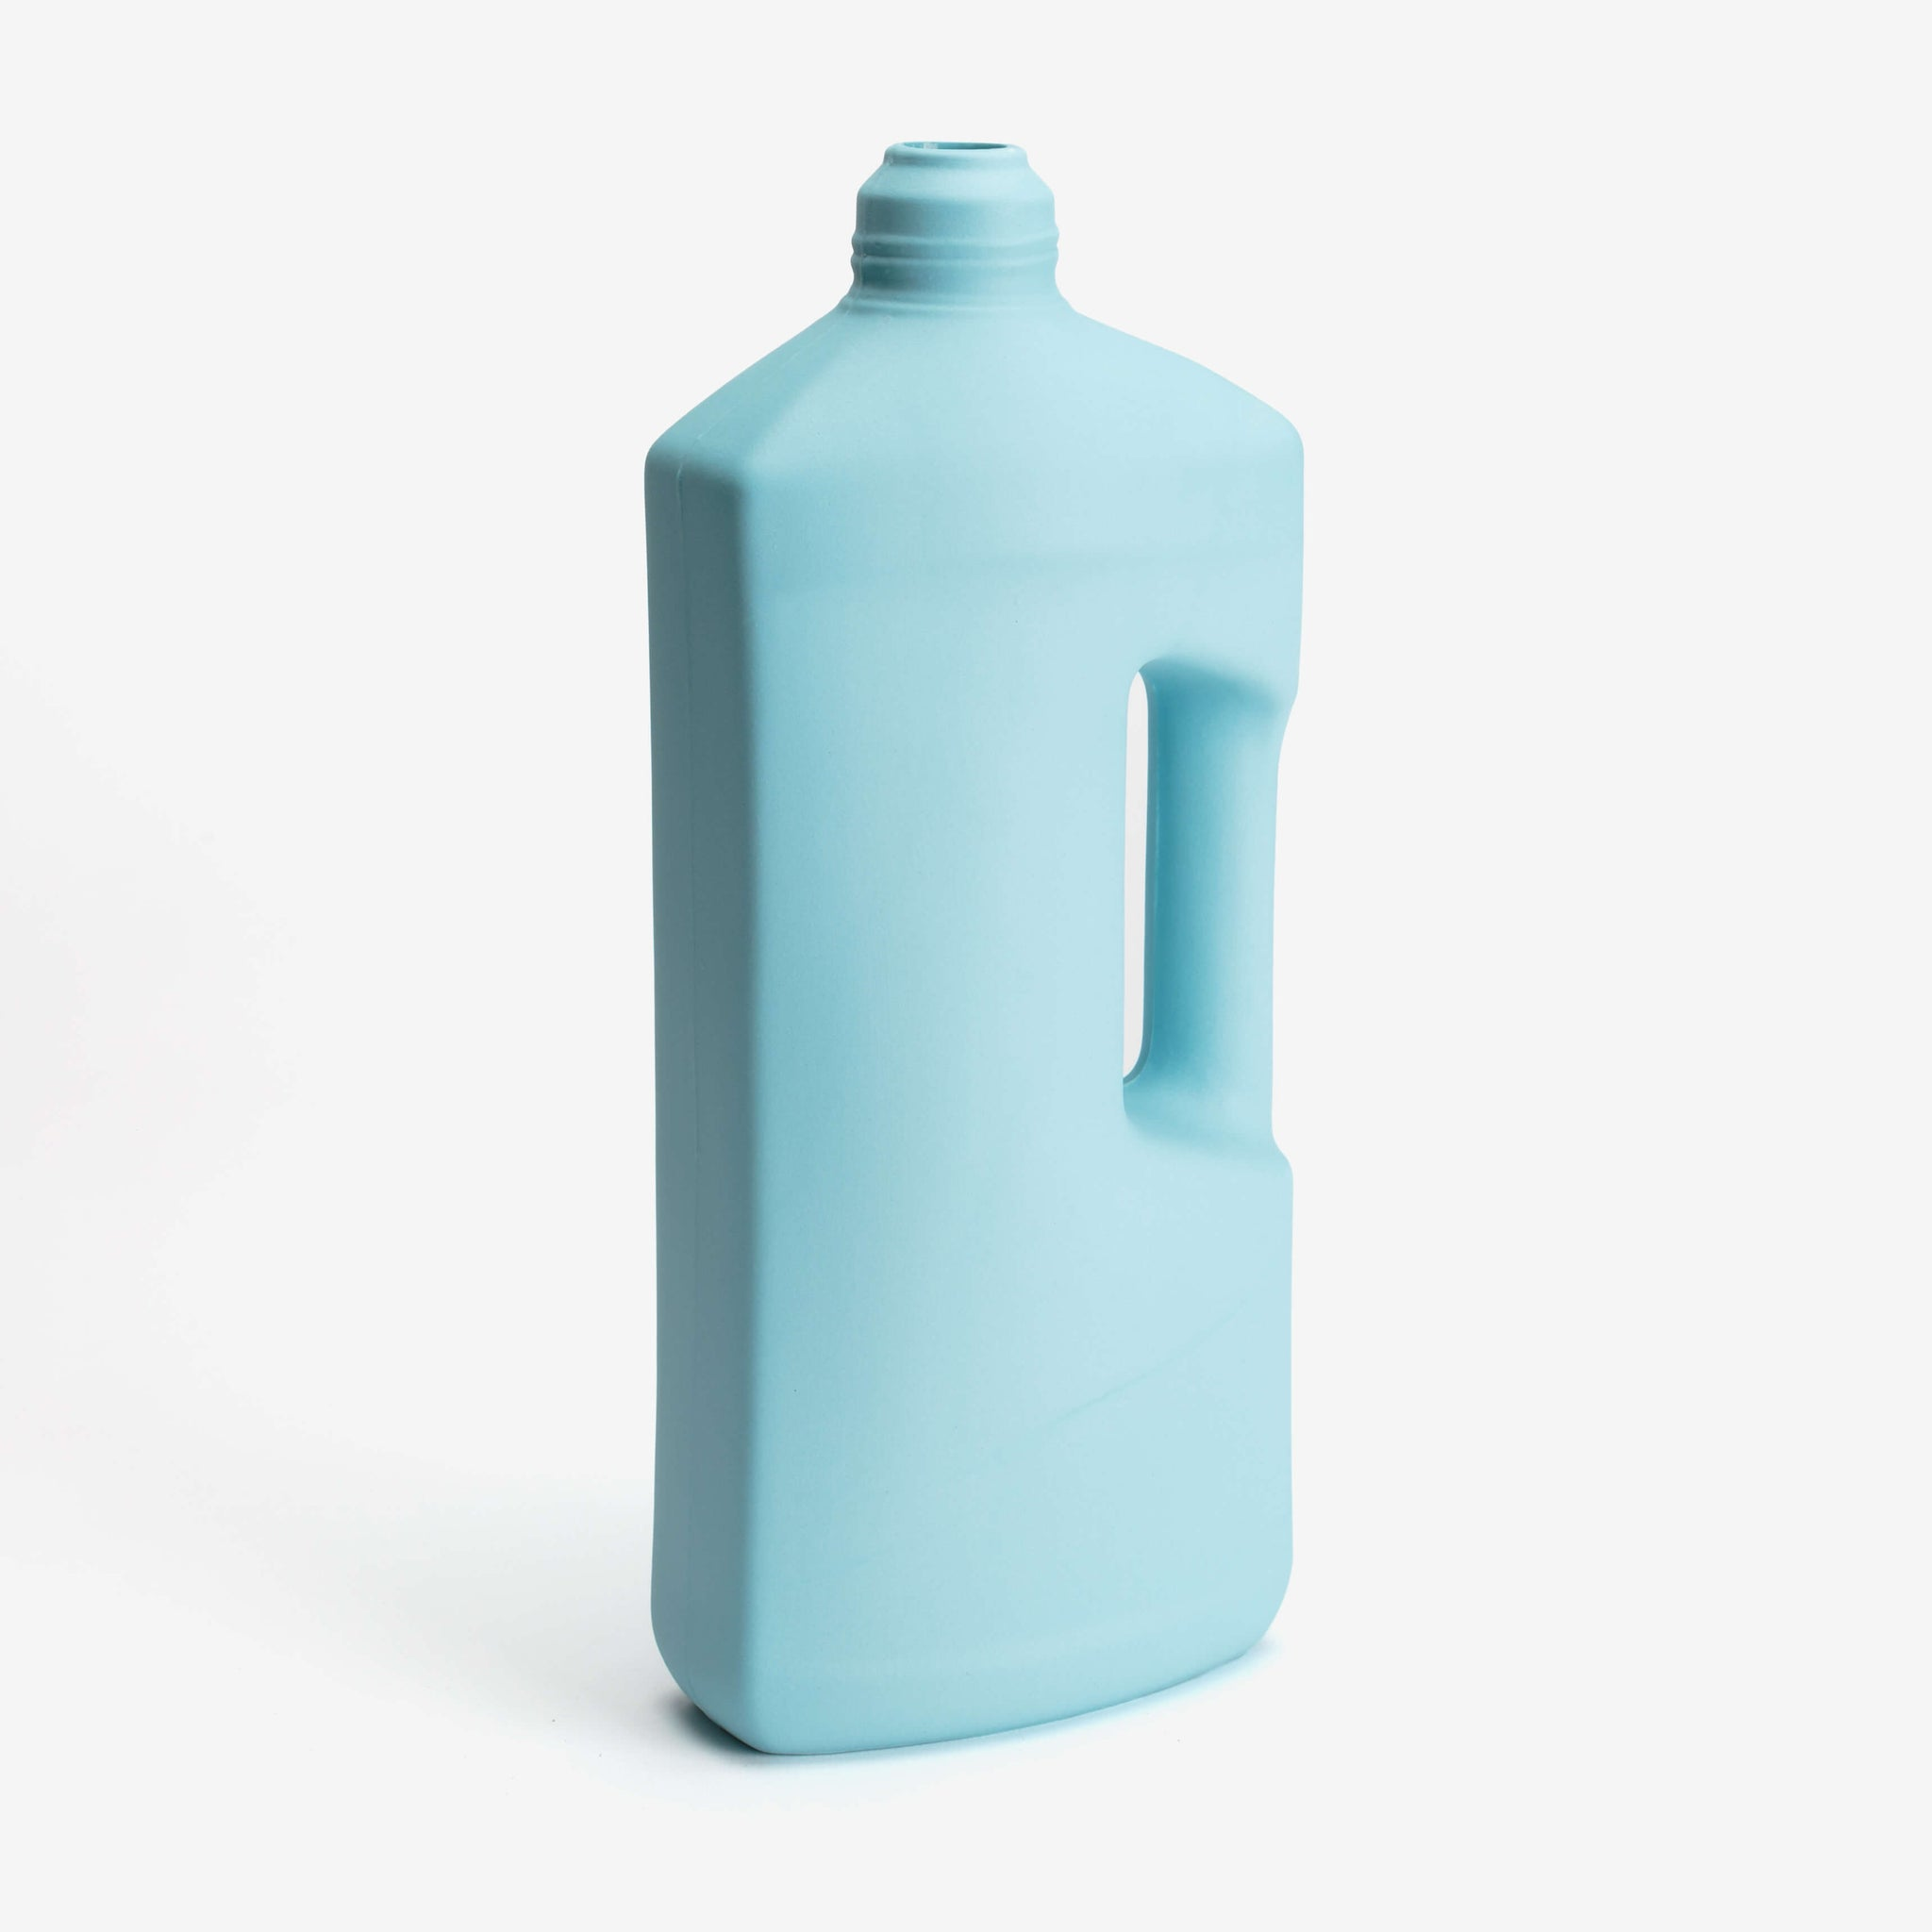 Bottle Vase #3 in Light Blue